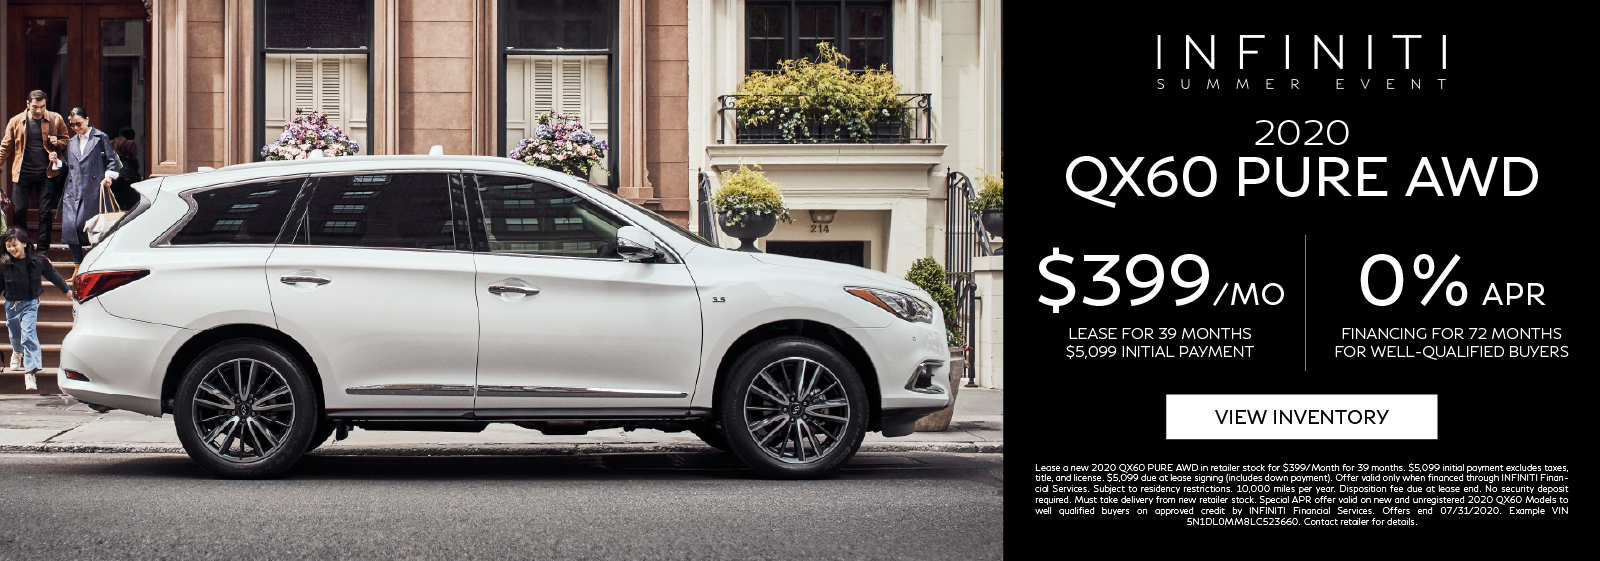 Lease a new 2020 QX60 PURE AWD for $399 per month for 39 months. Click to view inventory.